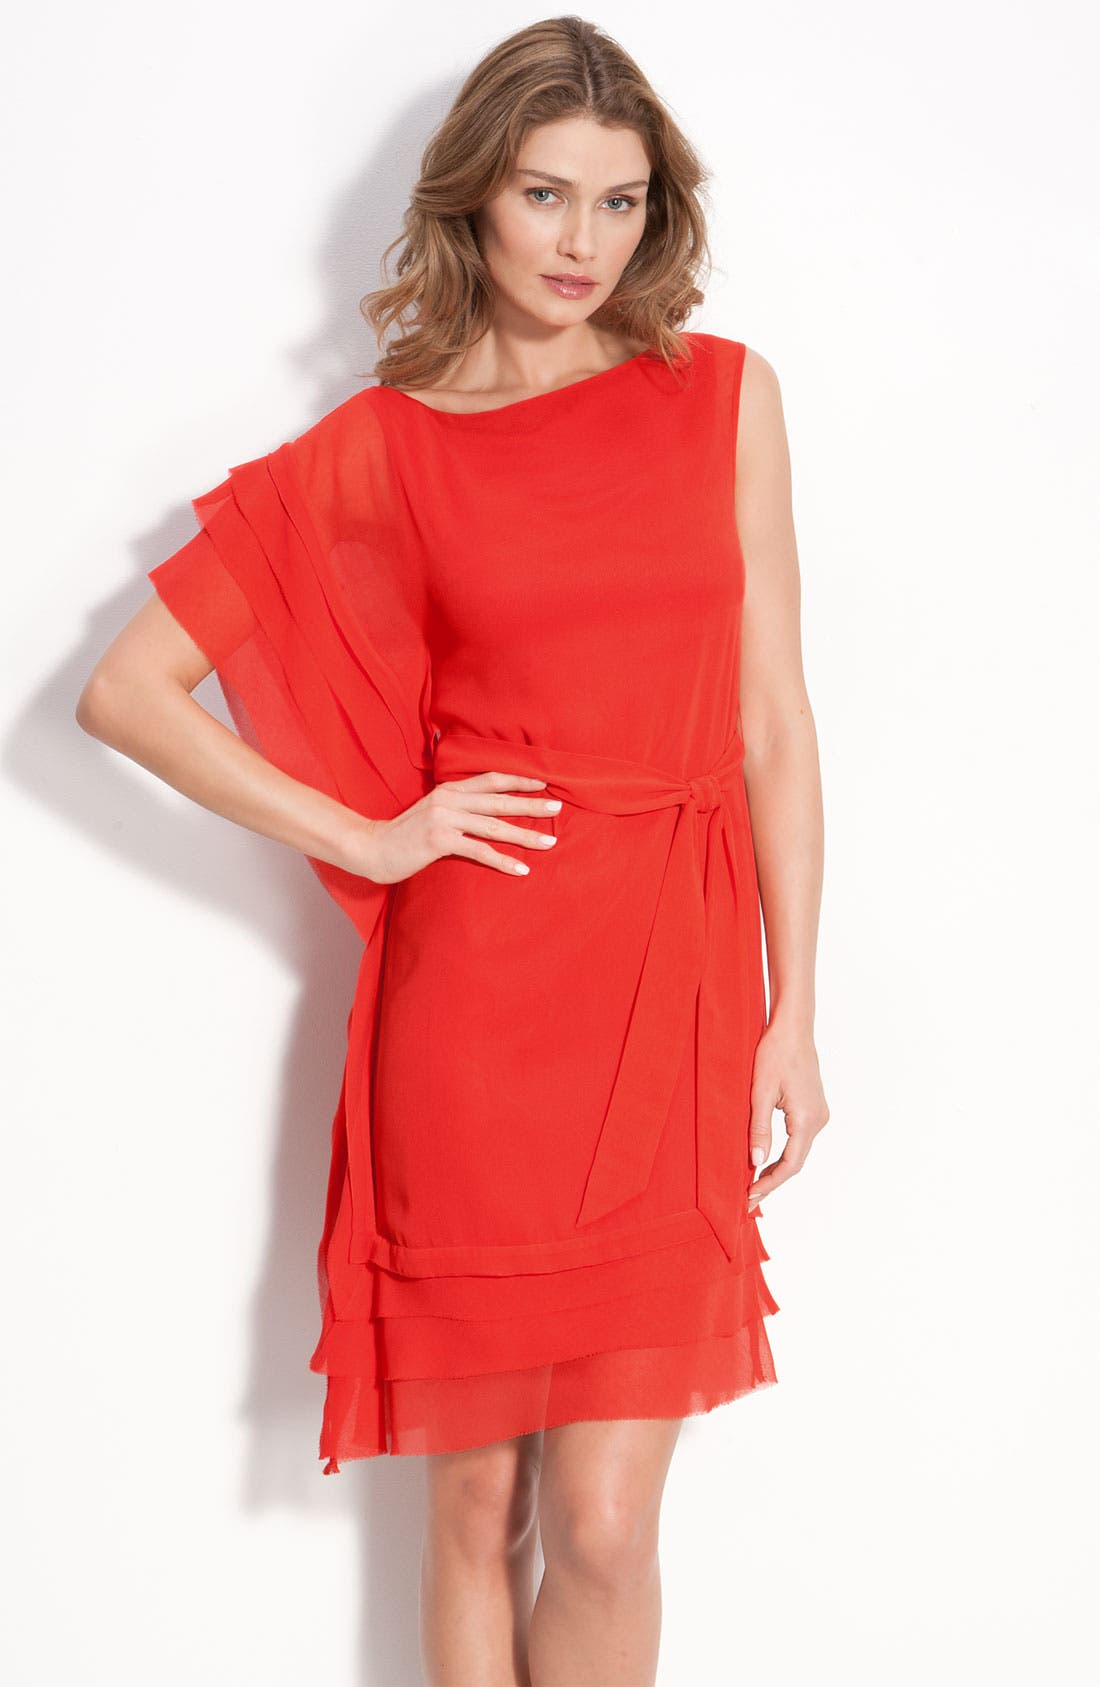 Alternate Image 1 Selected - Vince Camuto Asymmetrical Layered Dress with Sash Tie